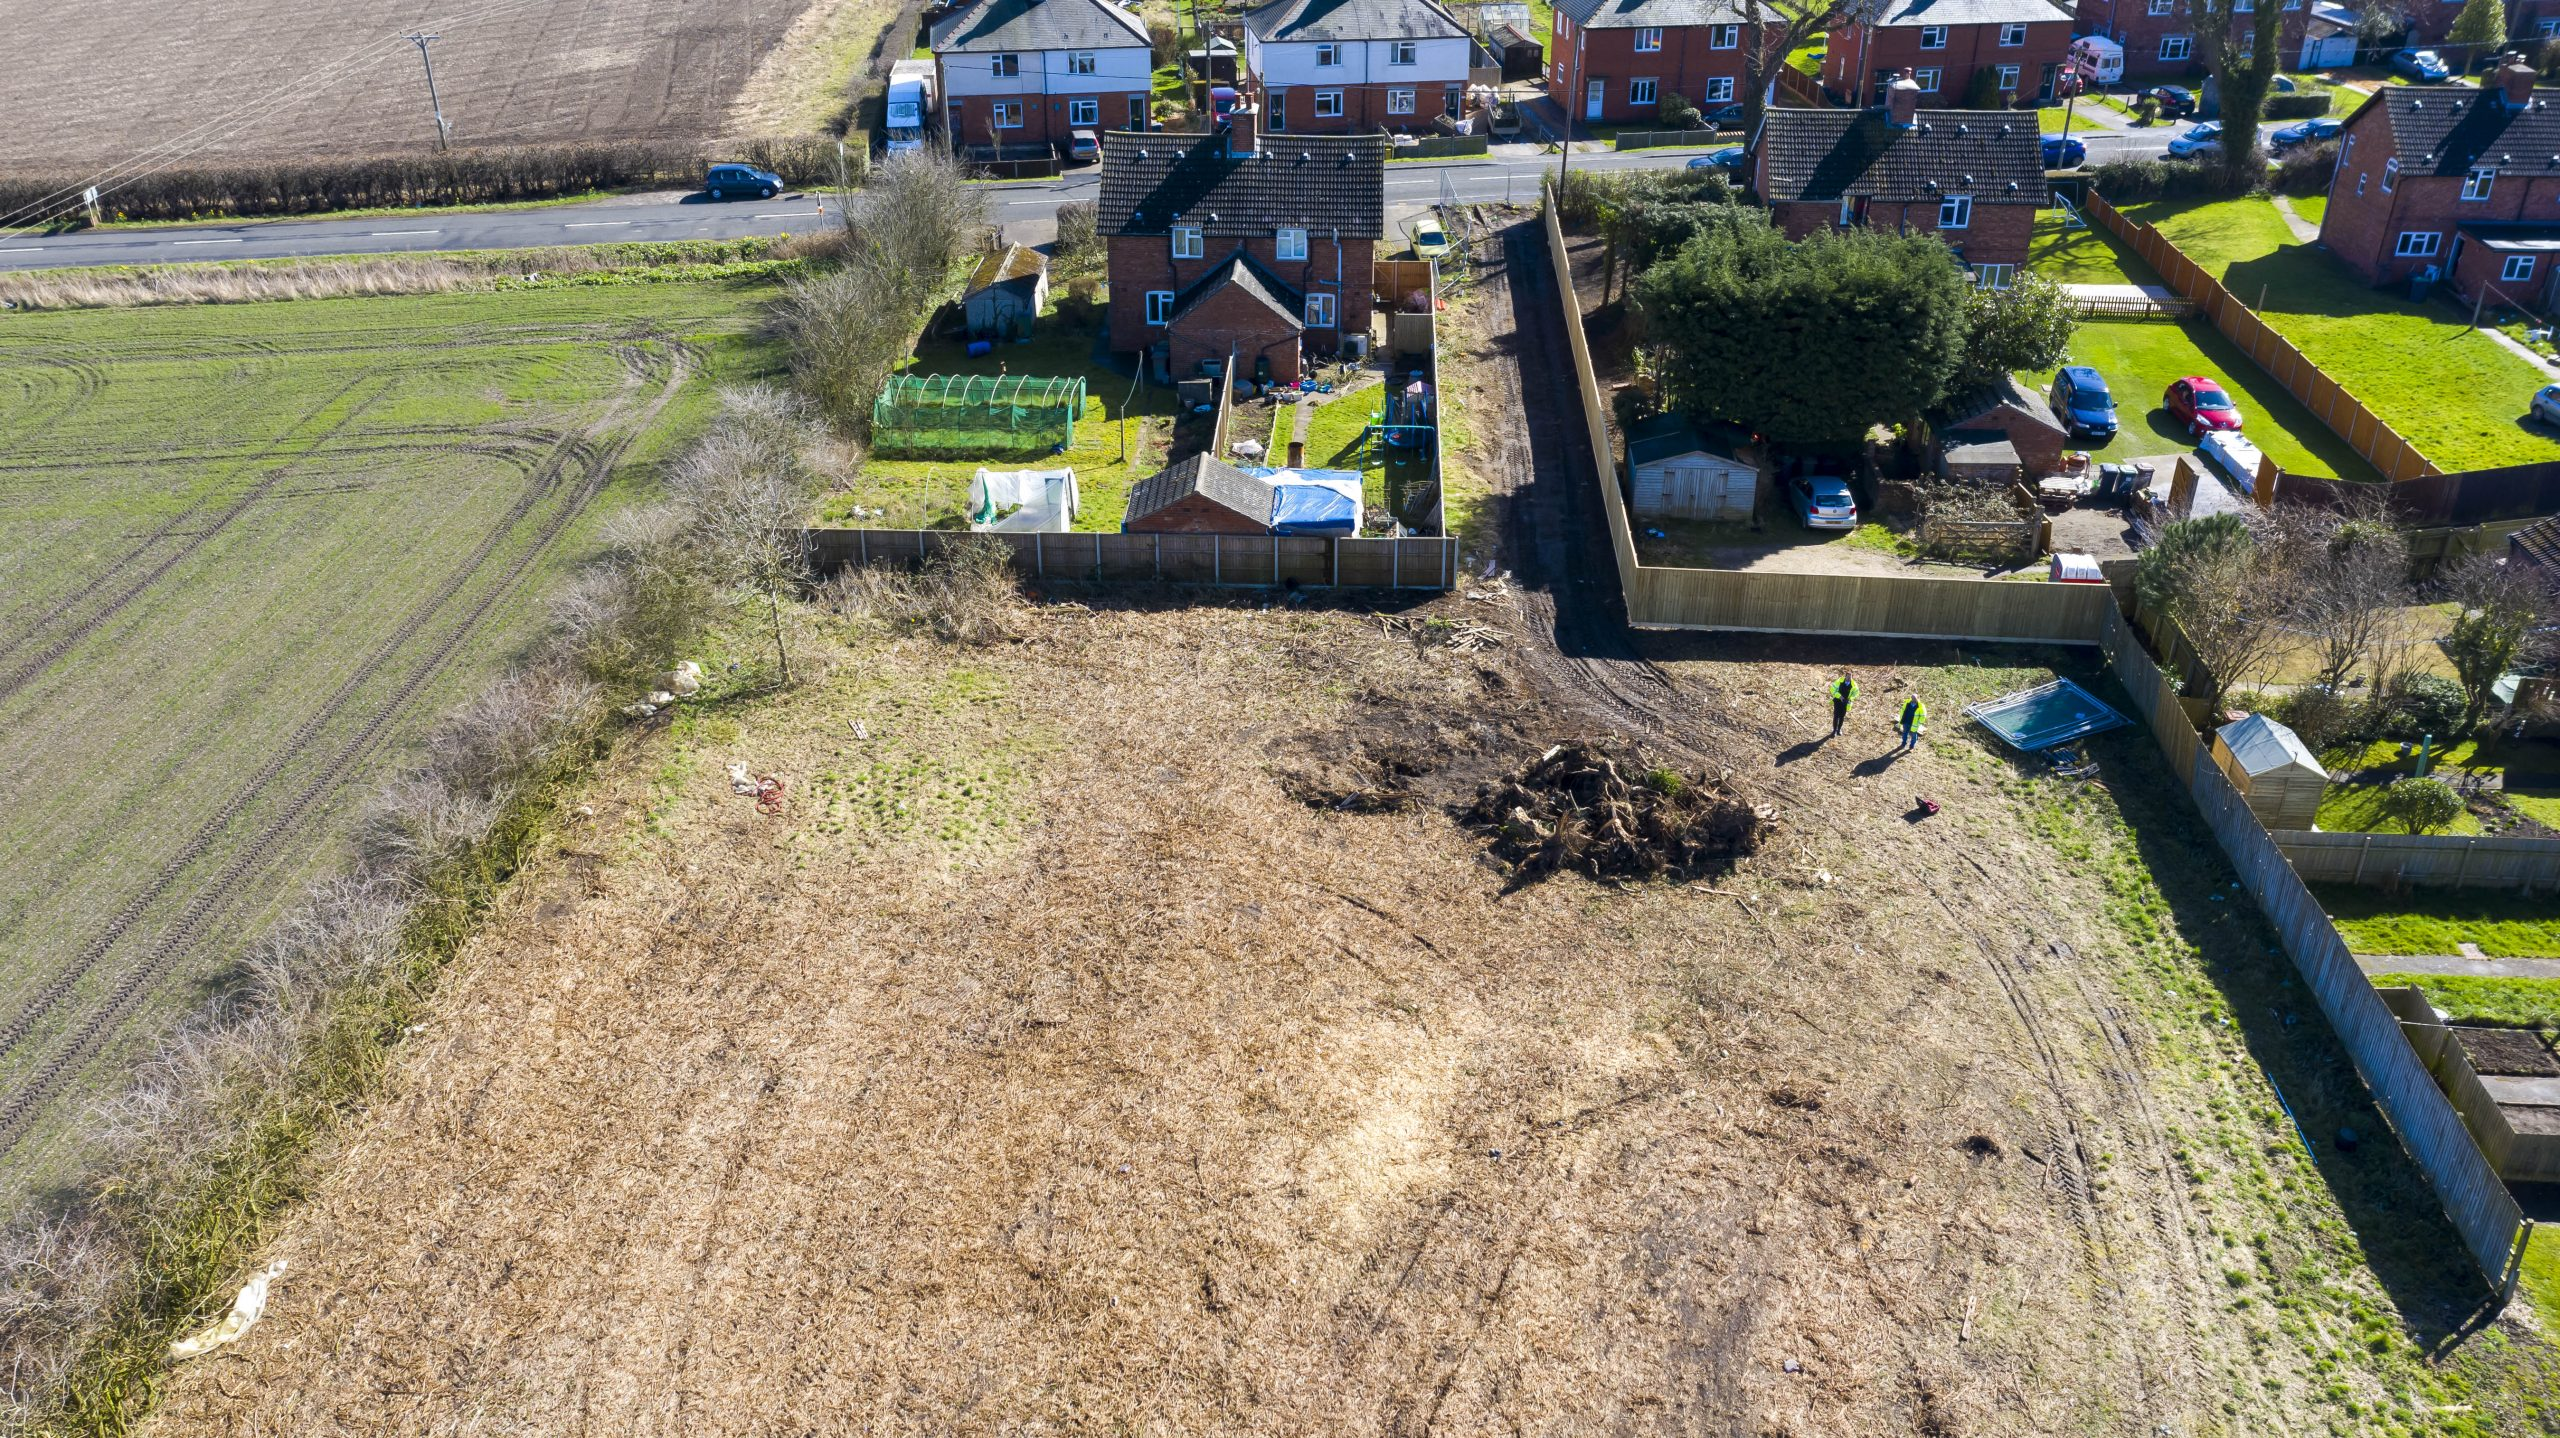 Work begins on new energy efficient council homes